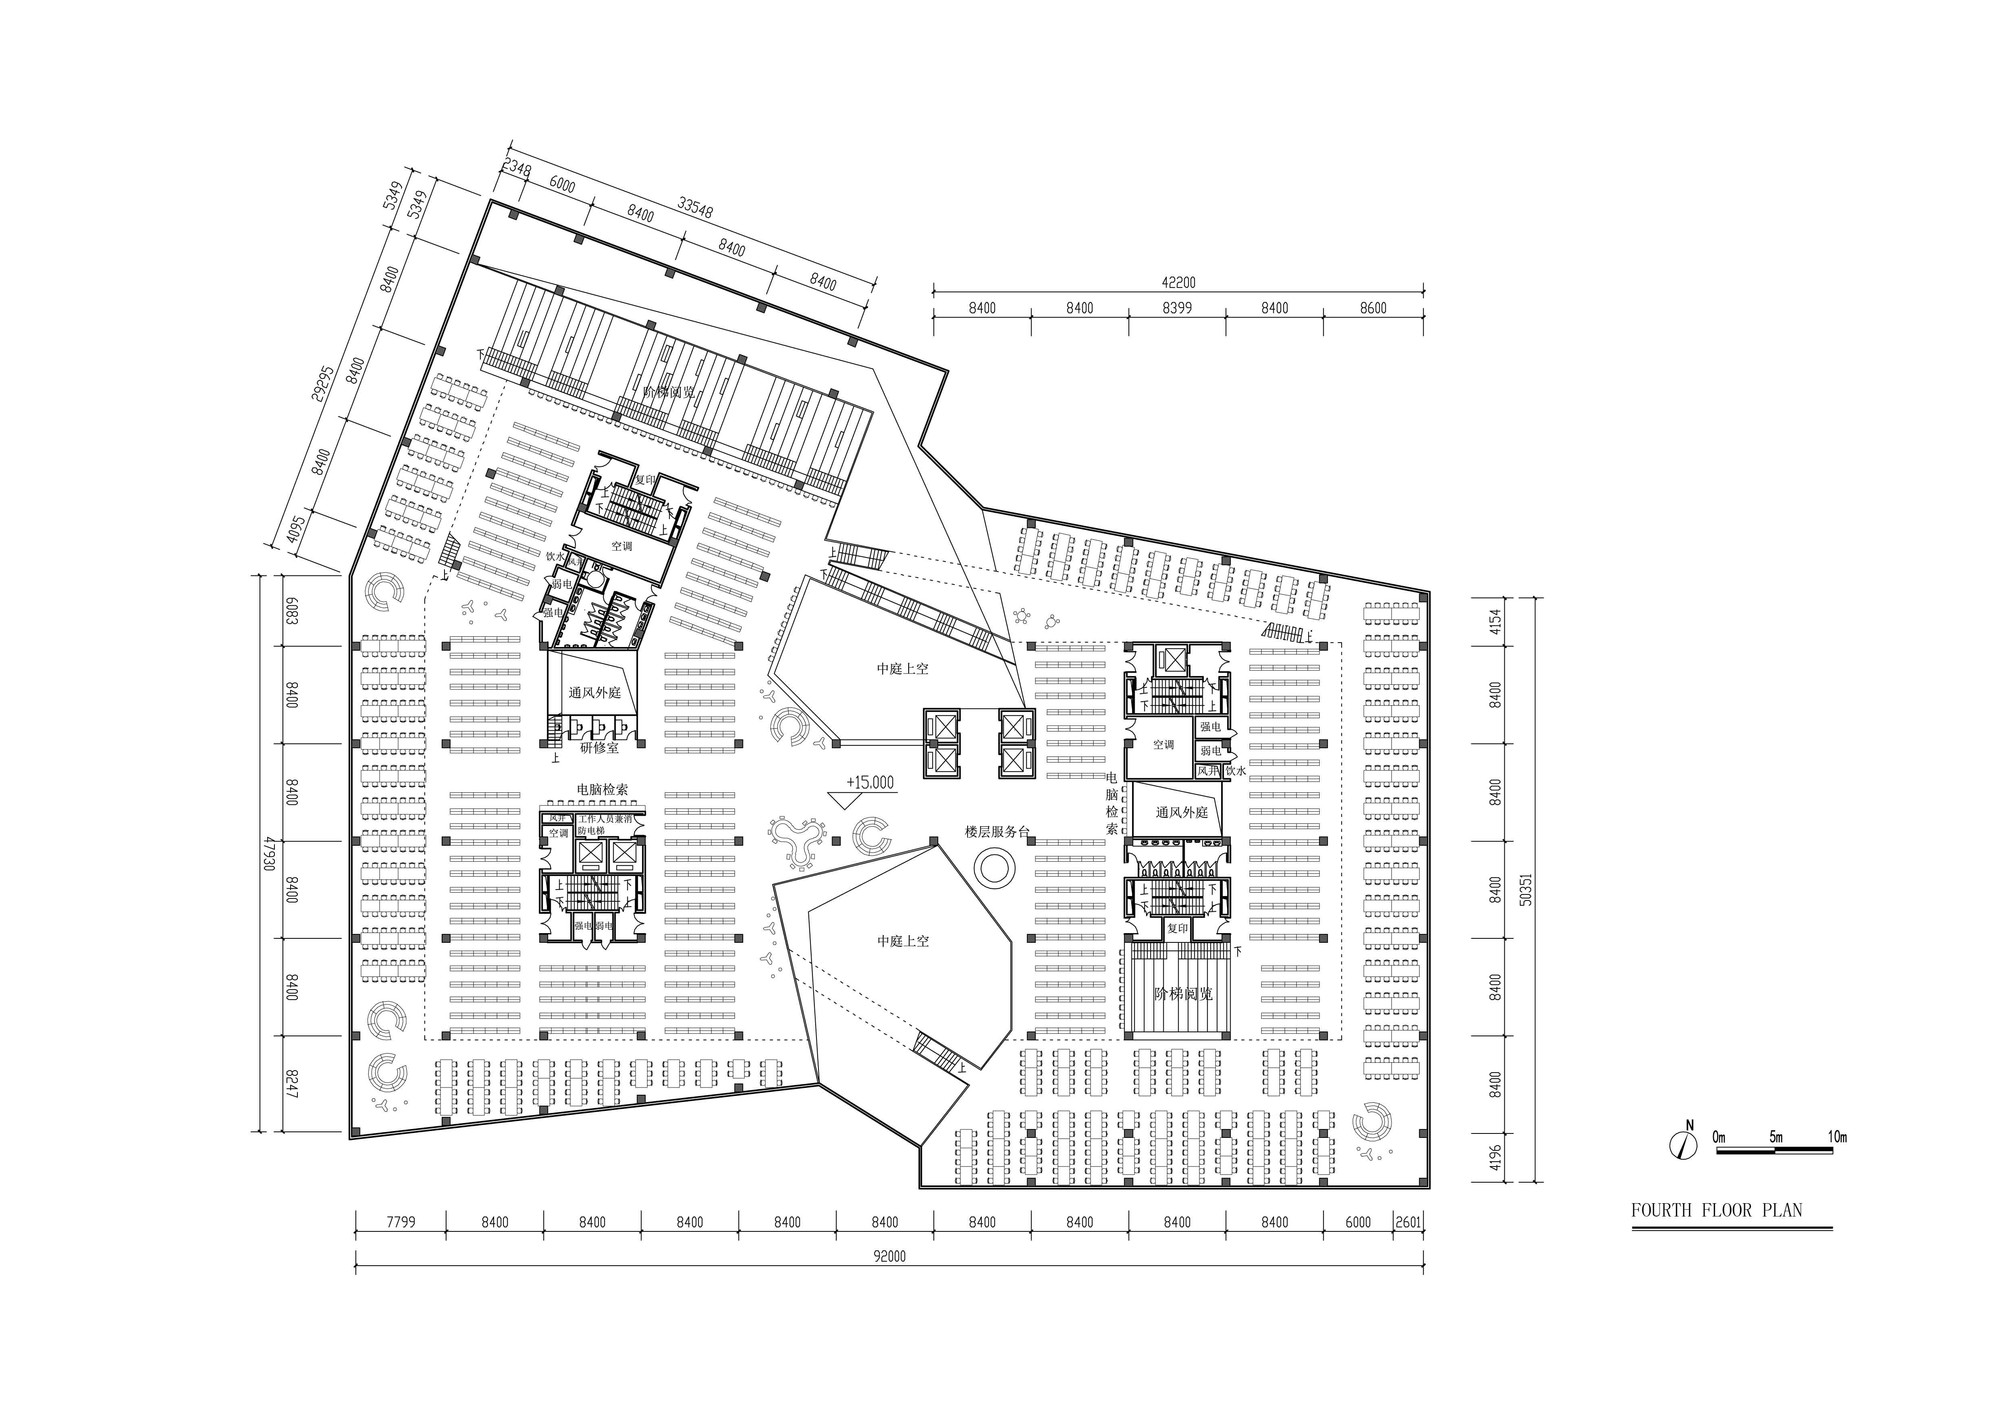 Library Floor Plans